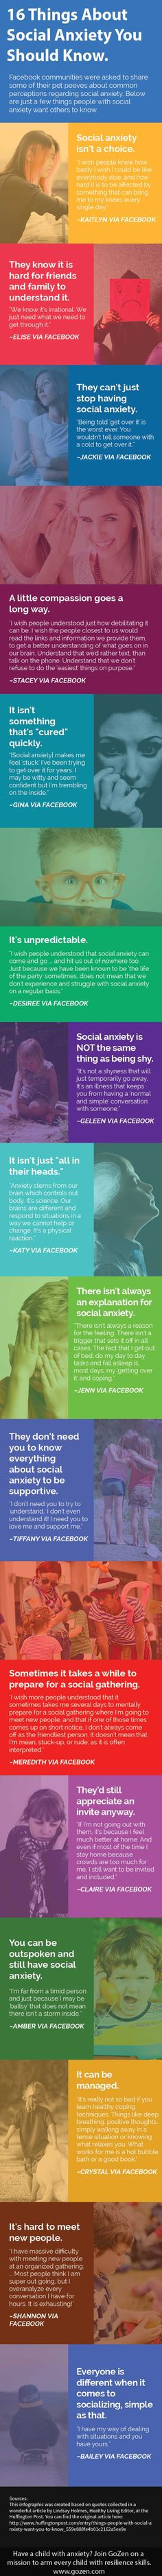 Social Anxiety Tips and Tools